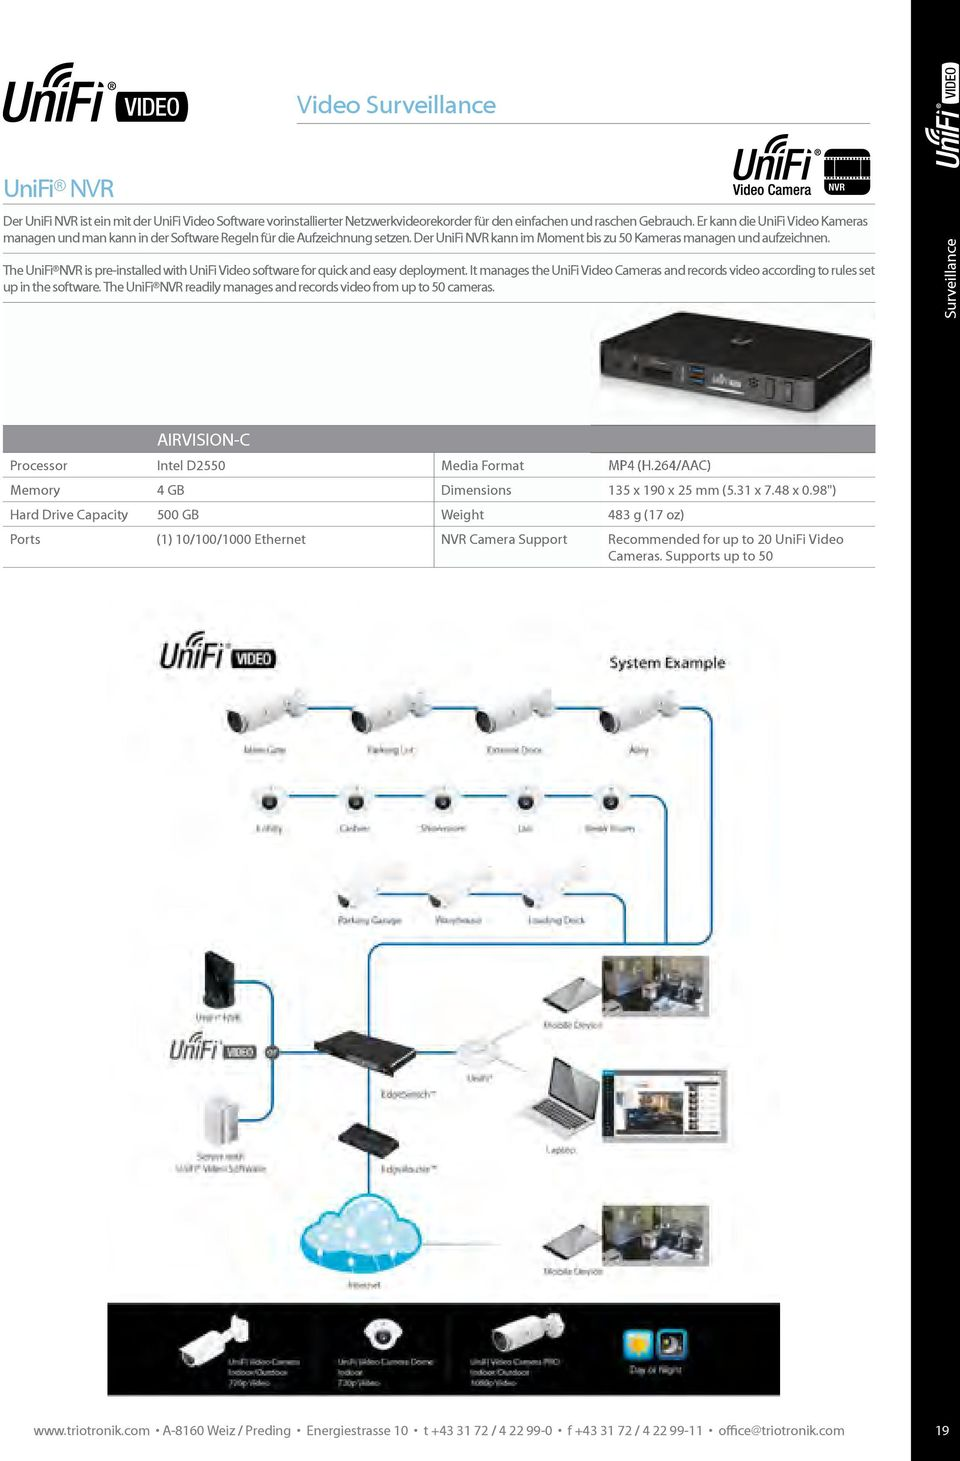 The UniFi NVR is pre-installed with UniFi Video software for quick and easy deployment. It manages the UniFi Video Cameras and records video according to rules set up in the software.